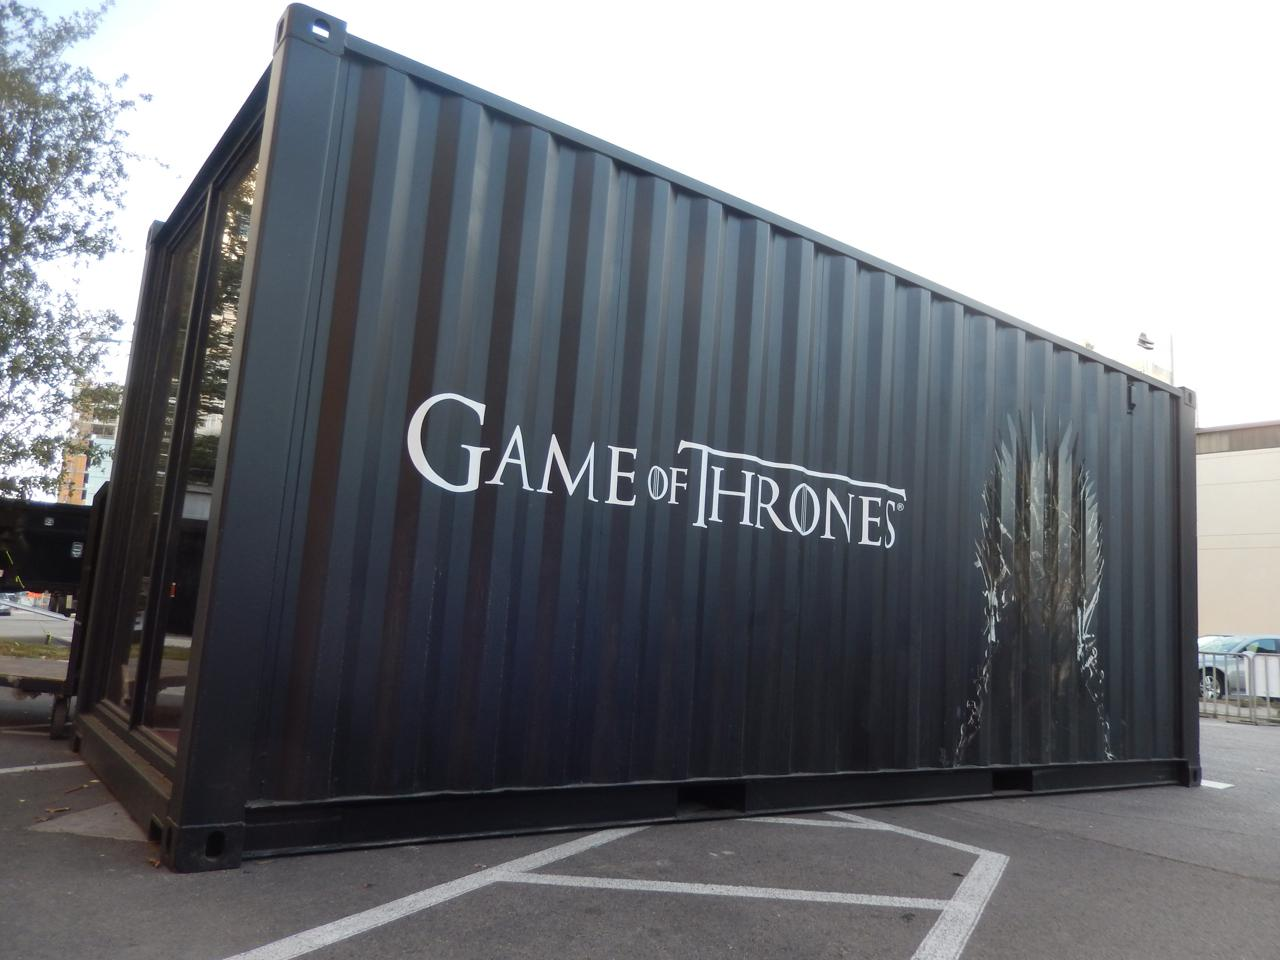 3 Reasons Today's Biggest Brands Are Using Shipping Containers For Their Campaigns